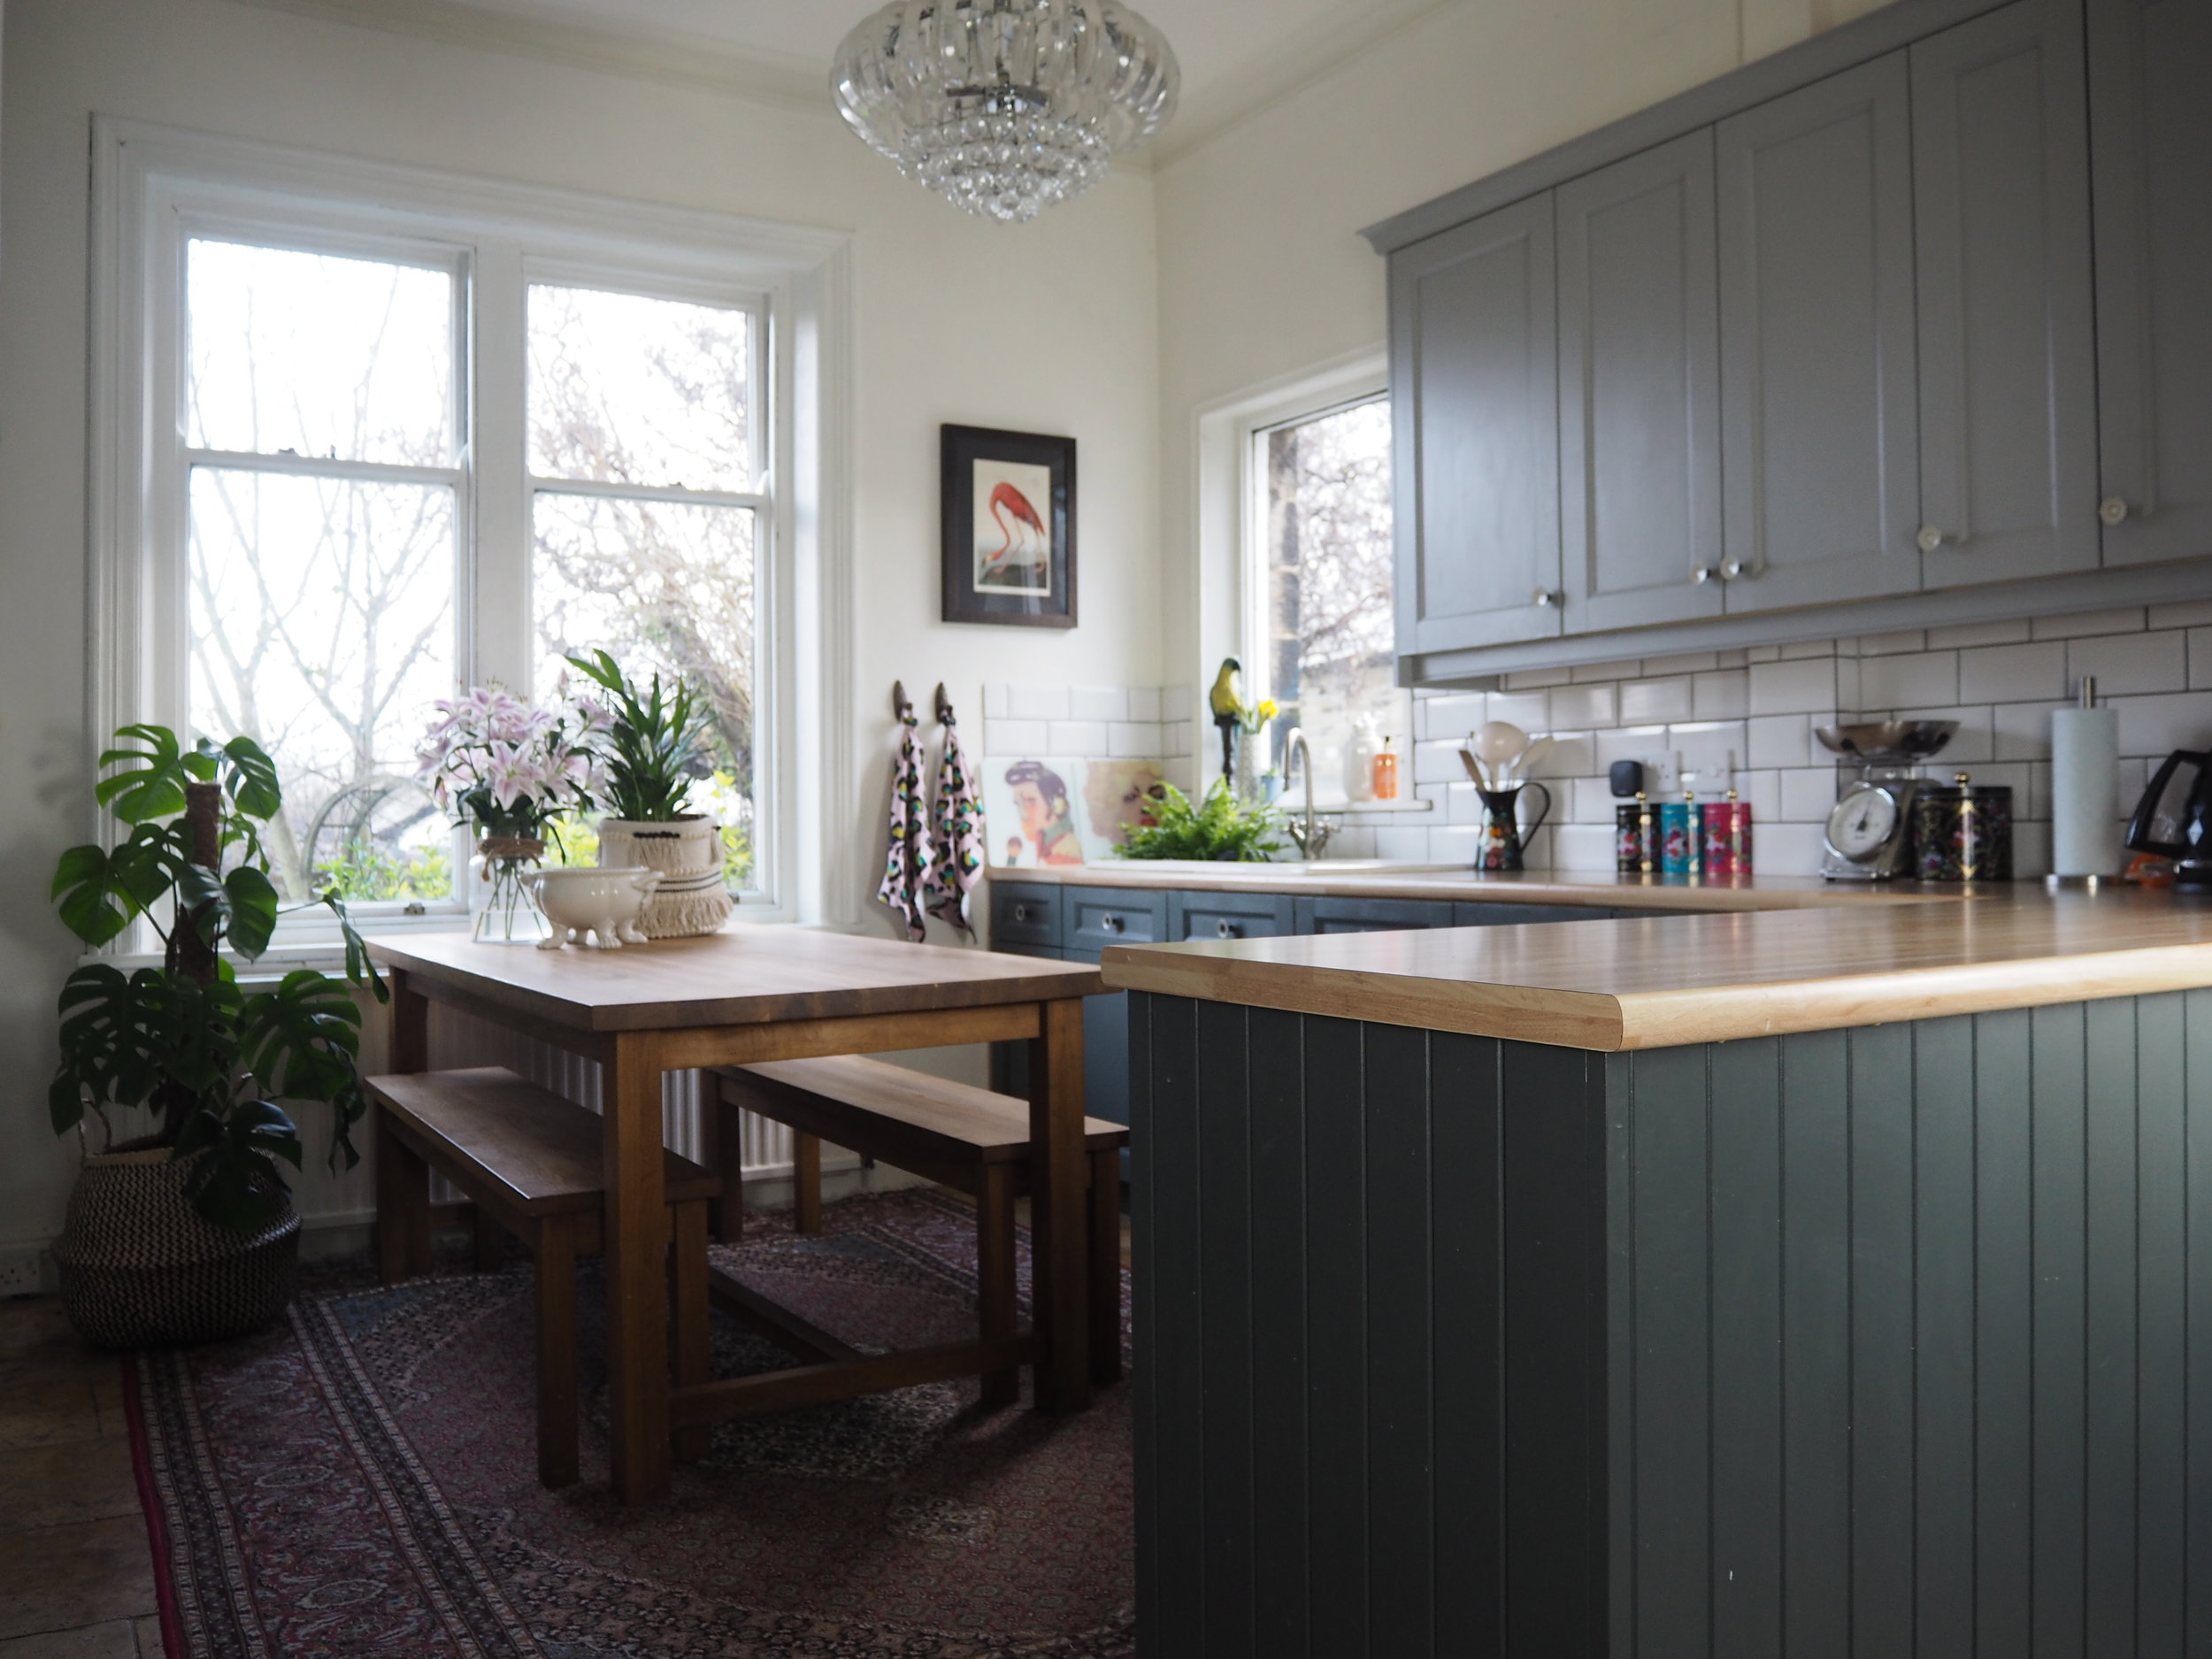 Kitchen landscape.jpg